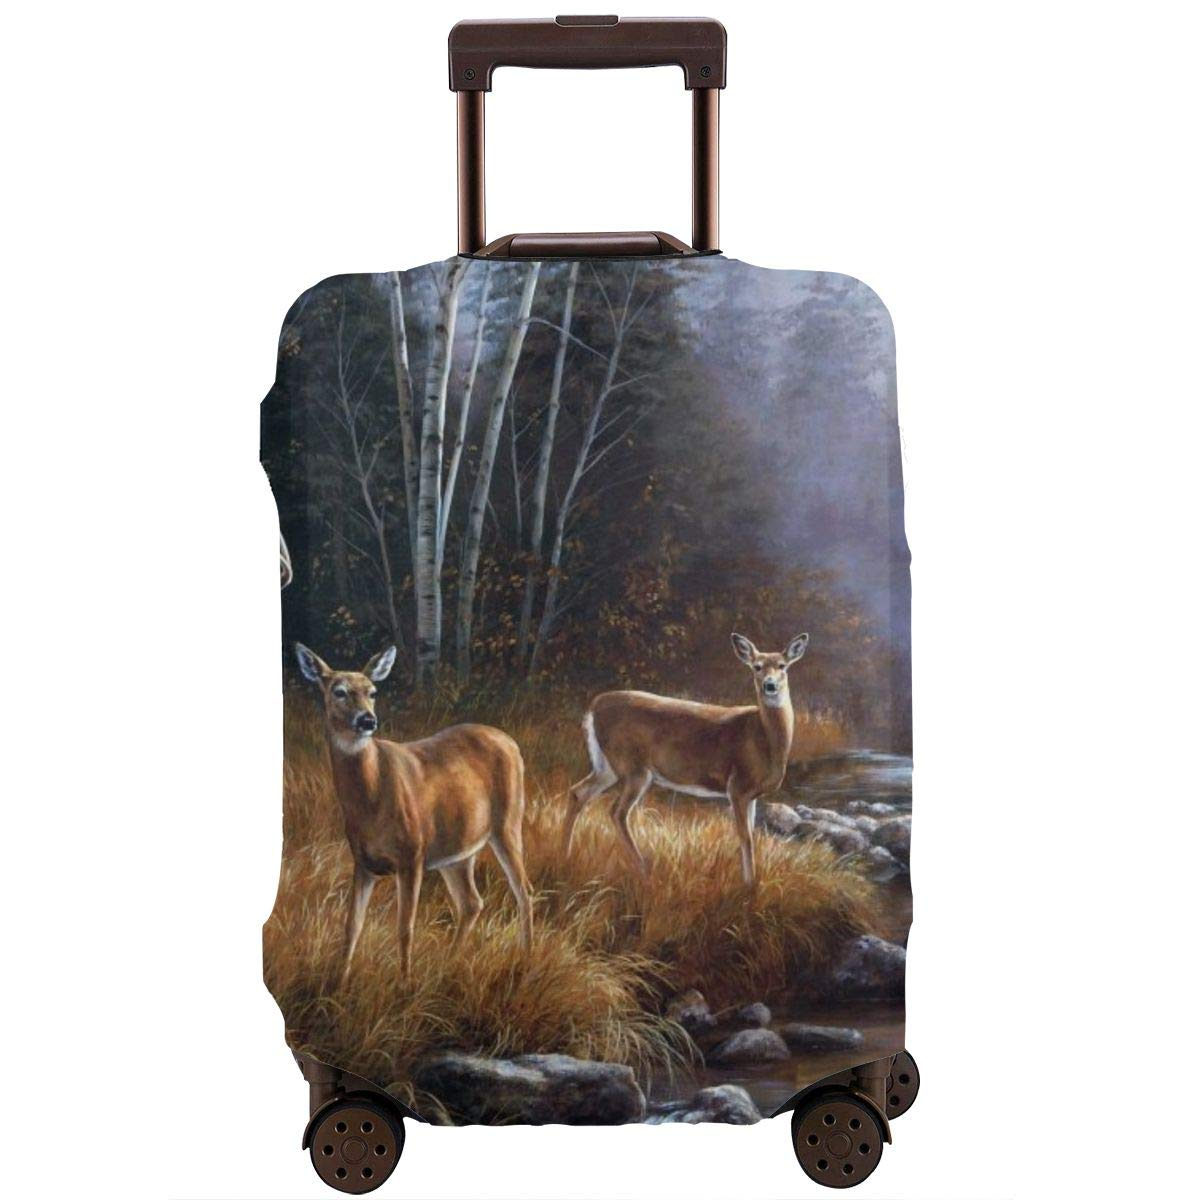 Luggage Cover Rustic Animal World Wildlife River Edge Deers Protective Travel Trunk Case Elastic Luggage Suitcase Protector Cover